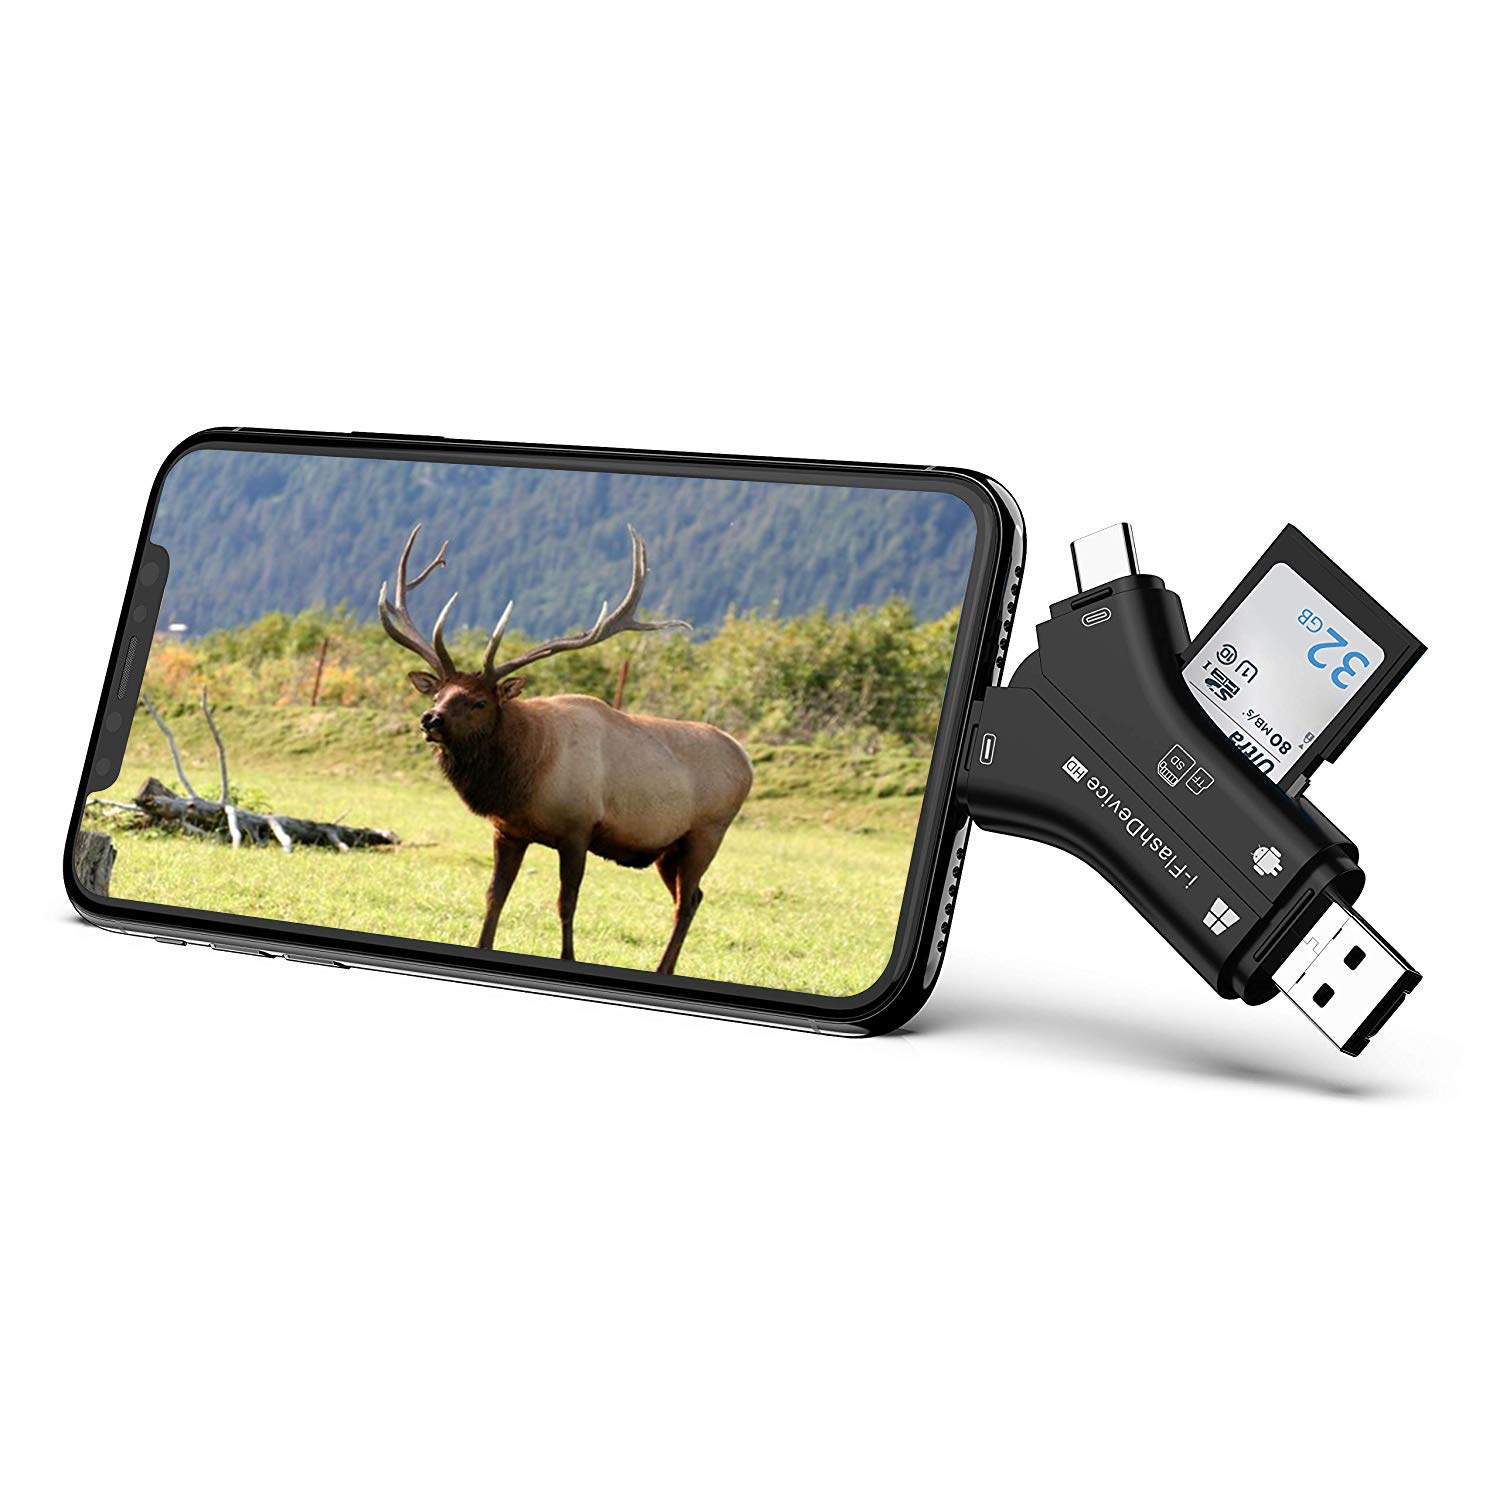 Game & Trail Camera Viewer SD & Micro SD Memory Card Reader for iPhone iPad Mac Laptop and Android Smartphone View Photos and Videos from Wildlife & Deer Hunting Cameras, Action Cameras or IP Cameras